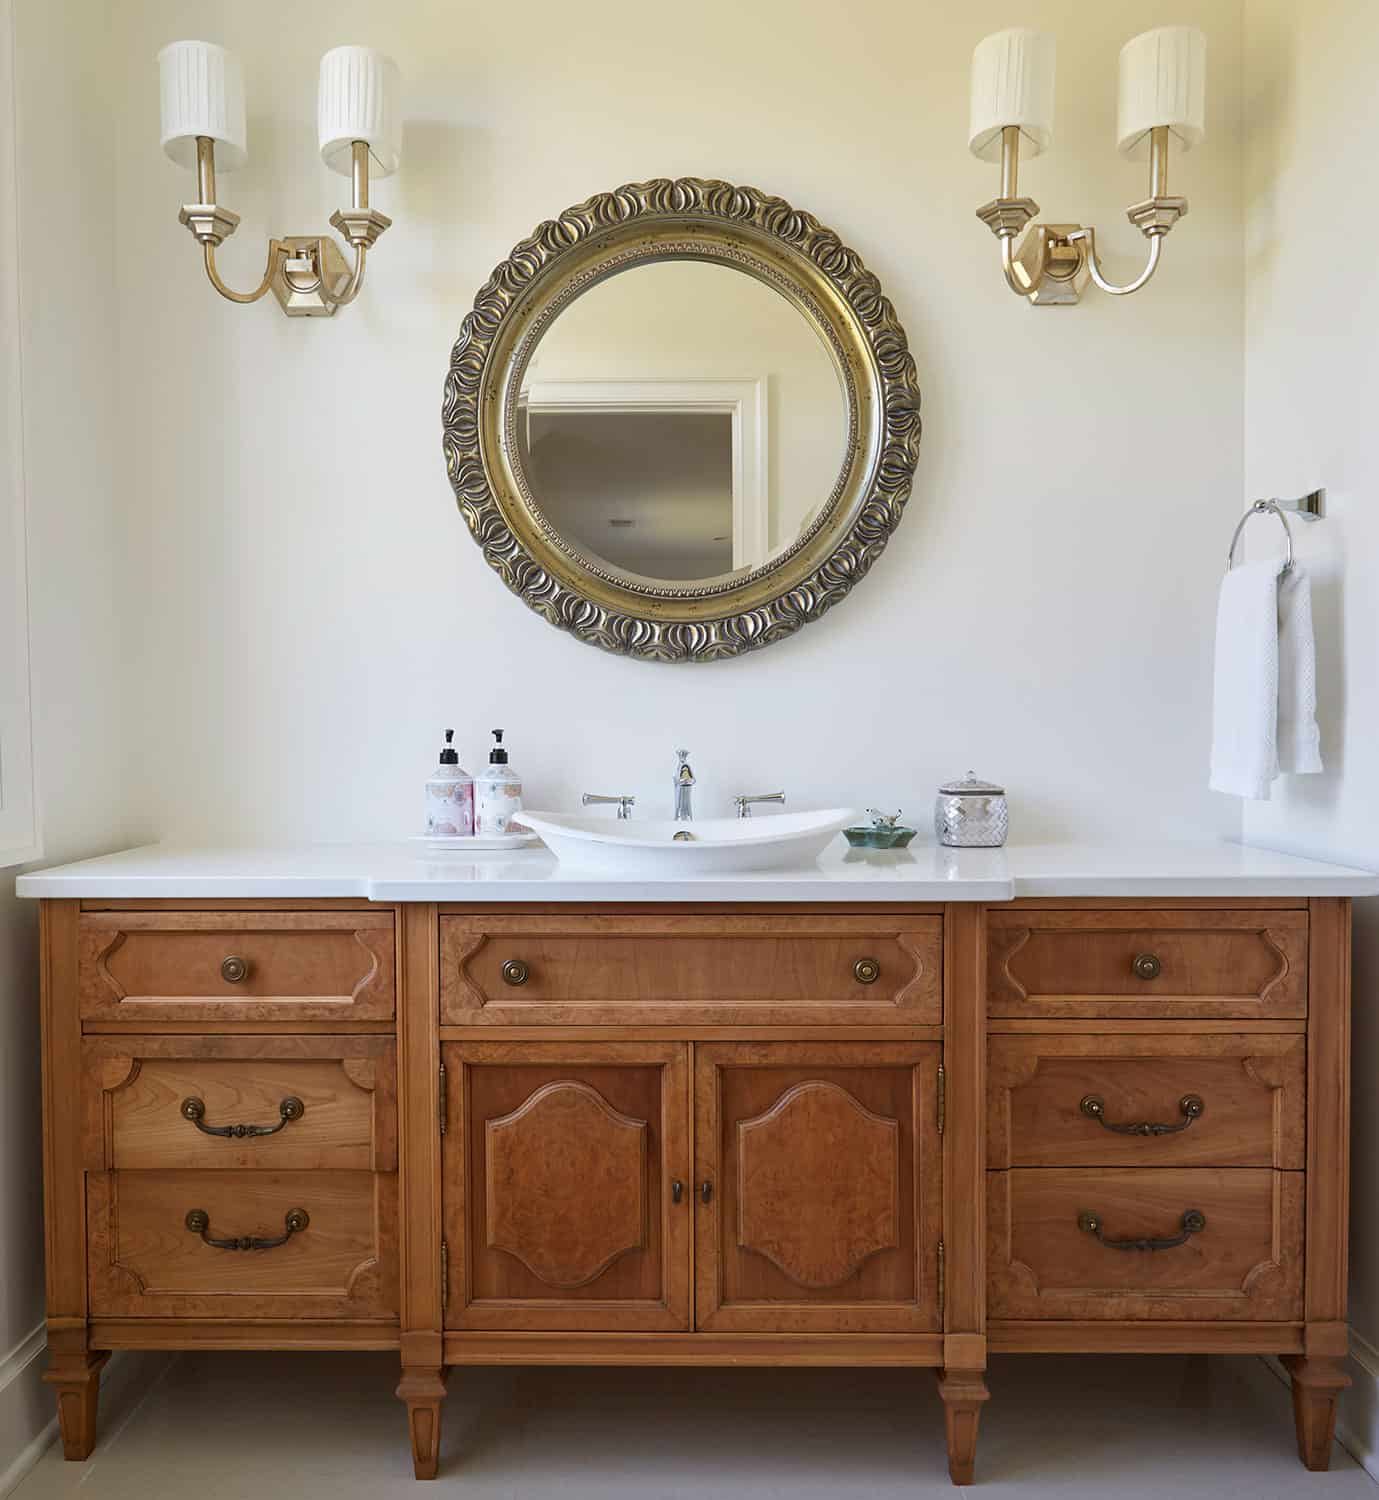 furniture-style-vanity-ornate-mirror